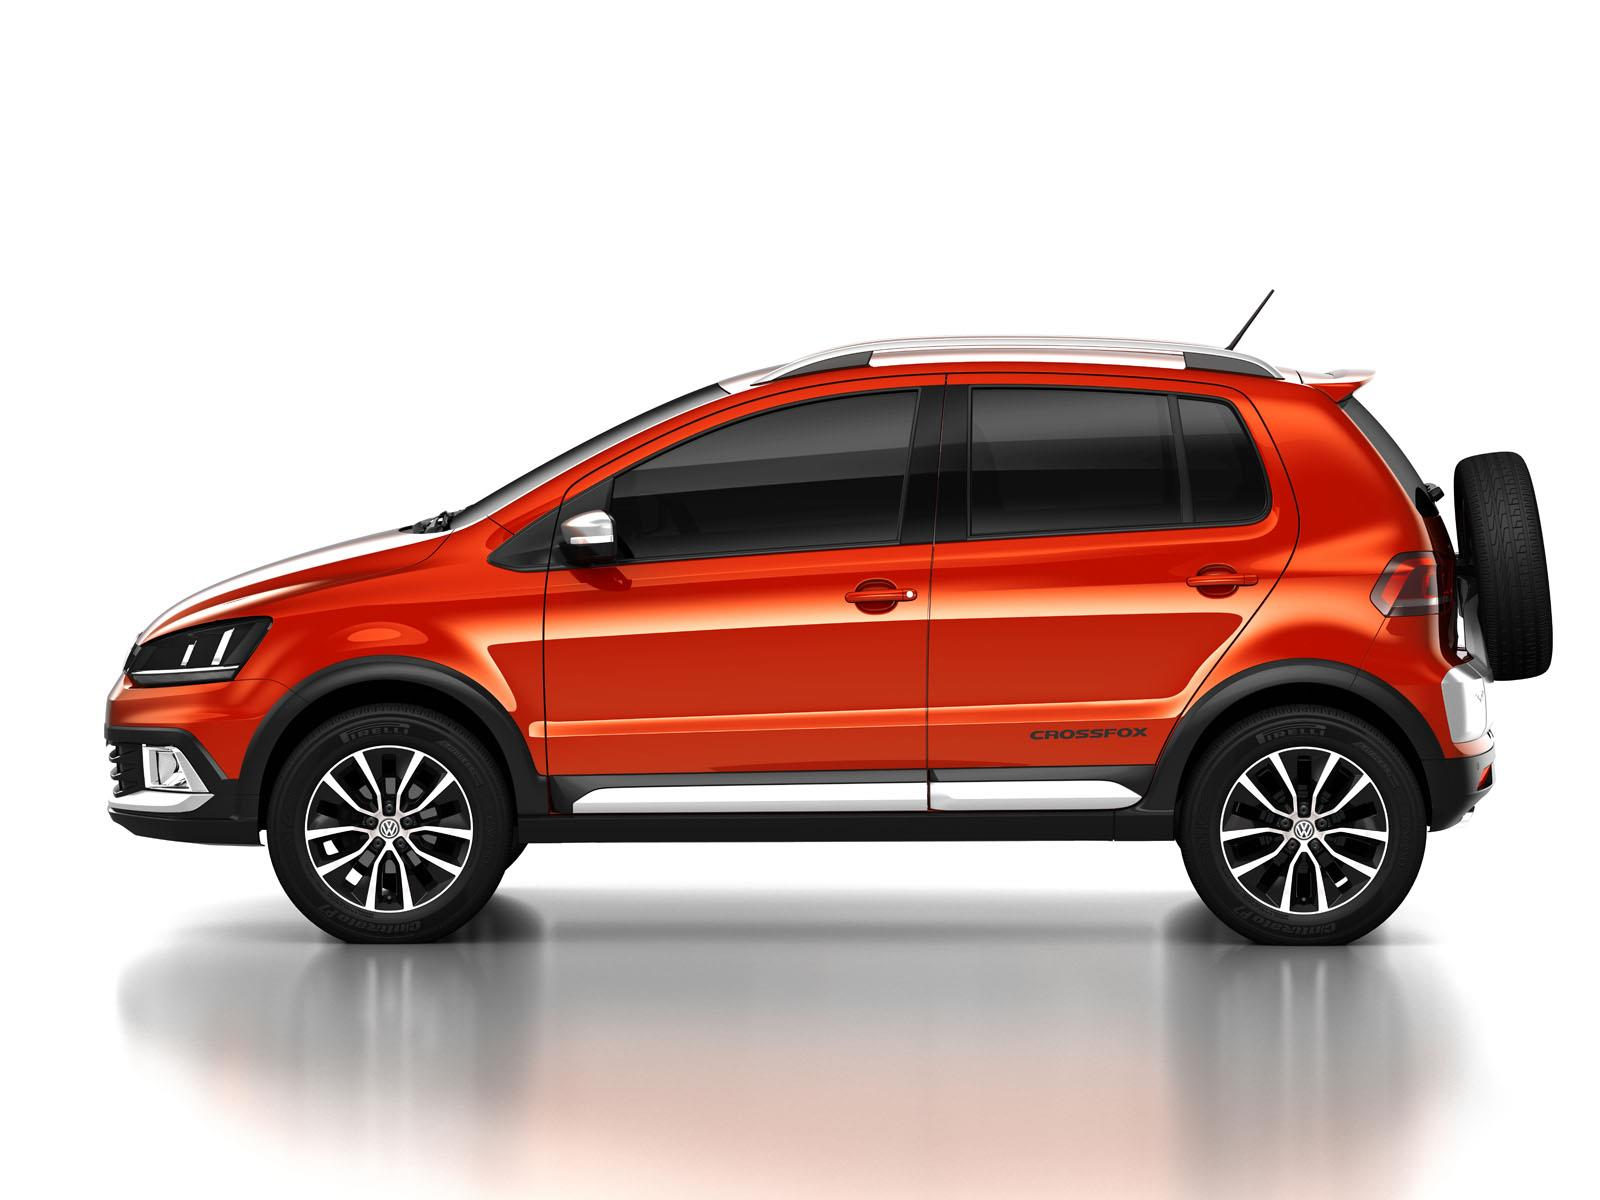 nissan march cross with Volkswagen Crossfox 2015 on Fiat Panda Restyling 2017 Ecco  e Cambia In Anteprima together with Takashi Moris Drift Er34 likewise Volkswagen Touareg 2018 Third Generation Photos 17238 likewise A2 Macro Aspects Of Globalisation 2015 moreover 2016 Geneva Motor Show Nissan Qashqai And X Trail Premium Concepts.